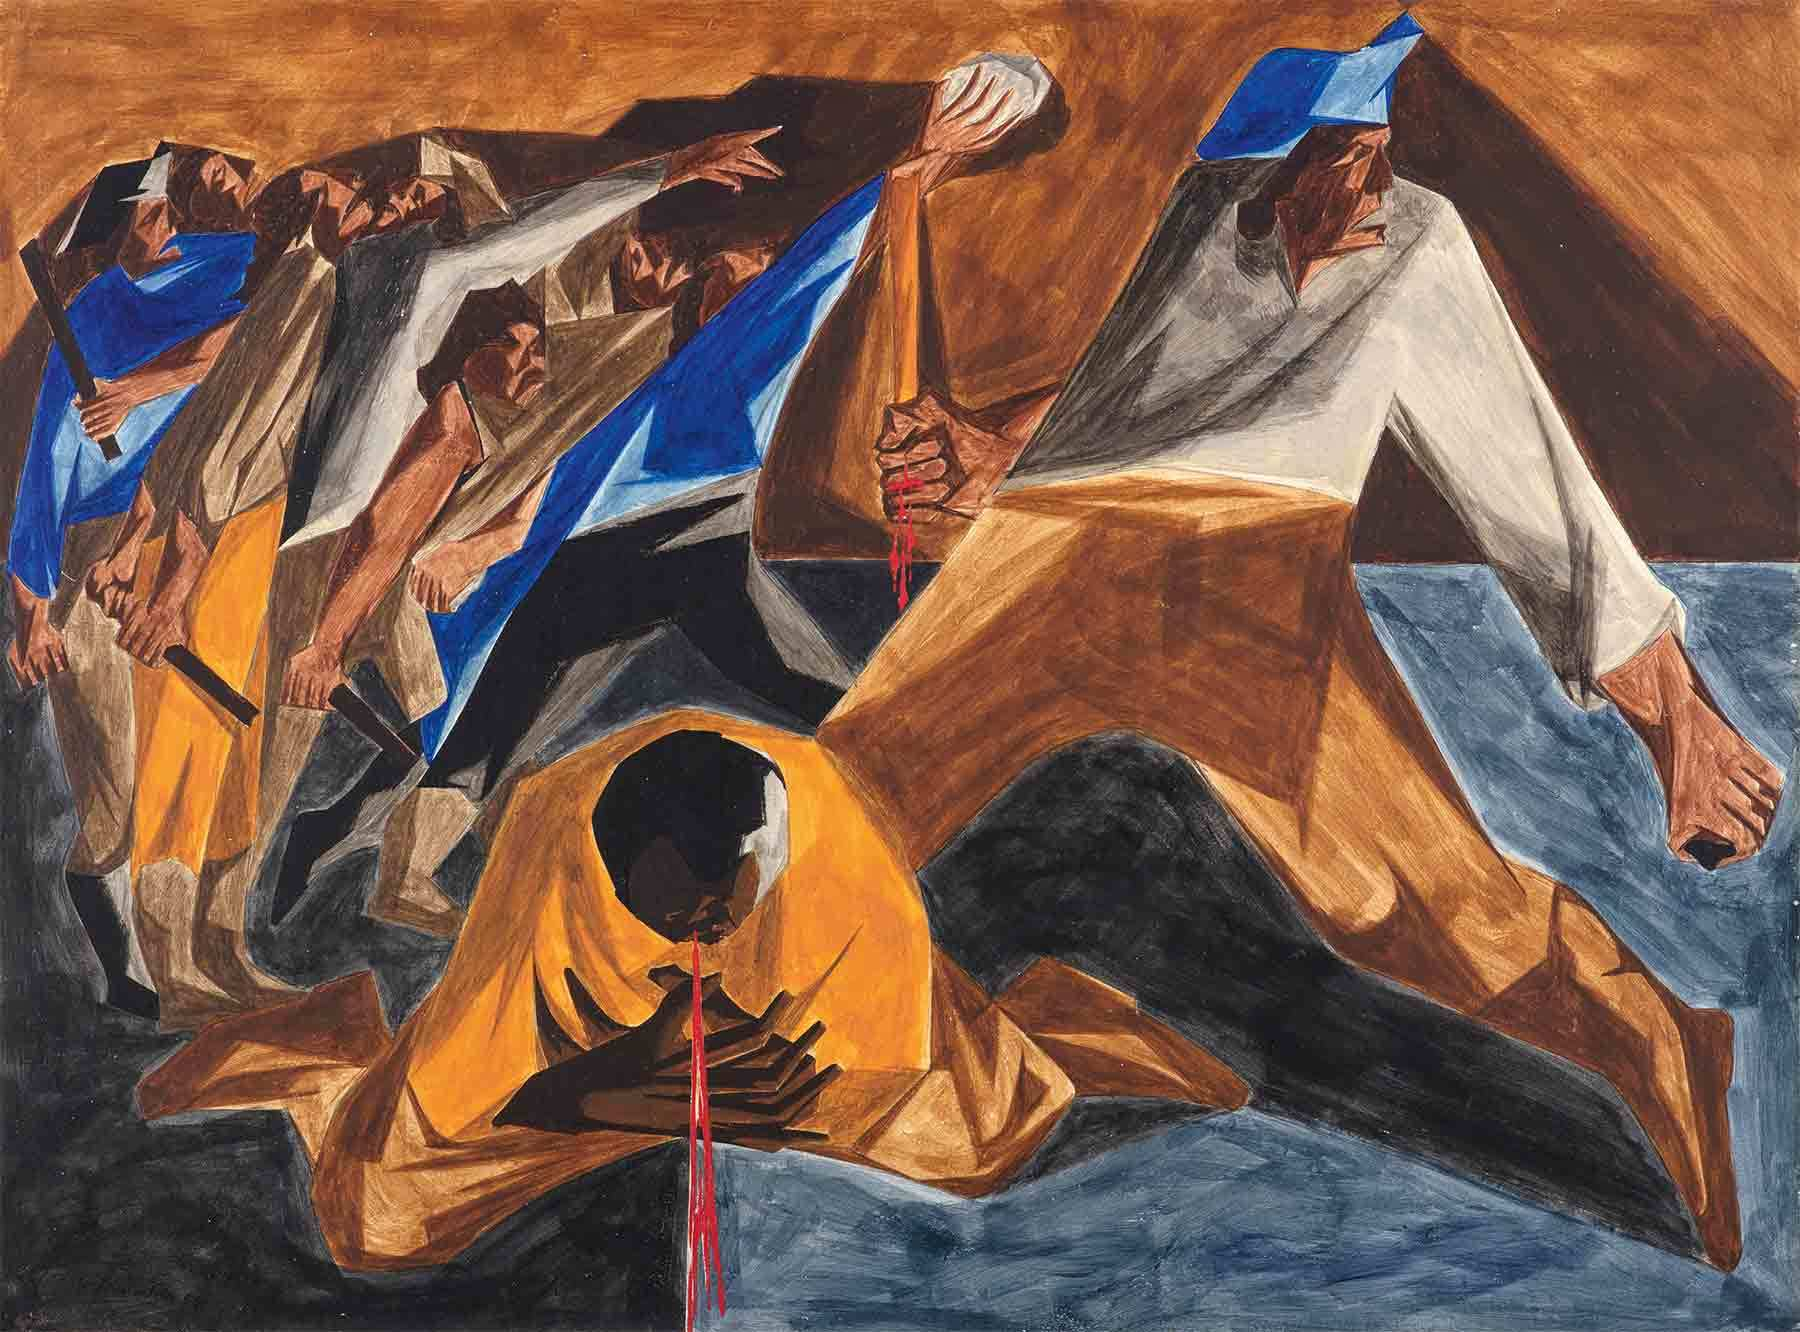 Detail of Jacob Lawrence, Massacre in Boston, Panel 2, 1954, from Struggle: From the History of the American People, 1954–56.